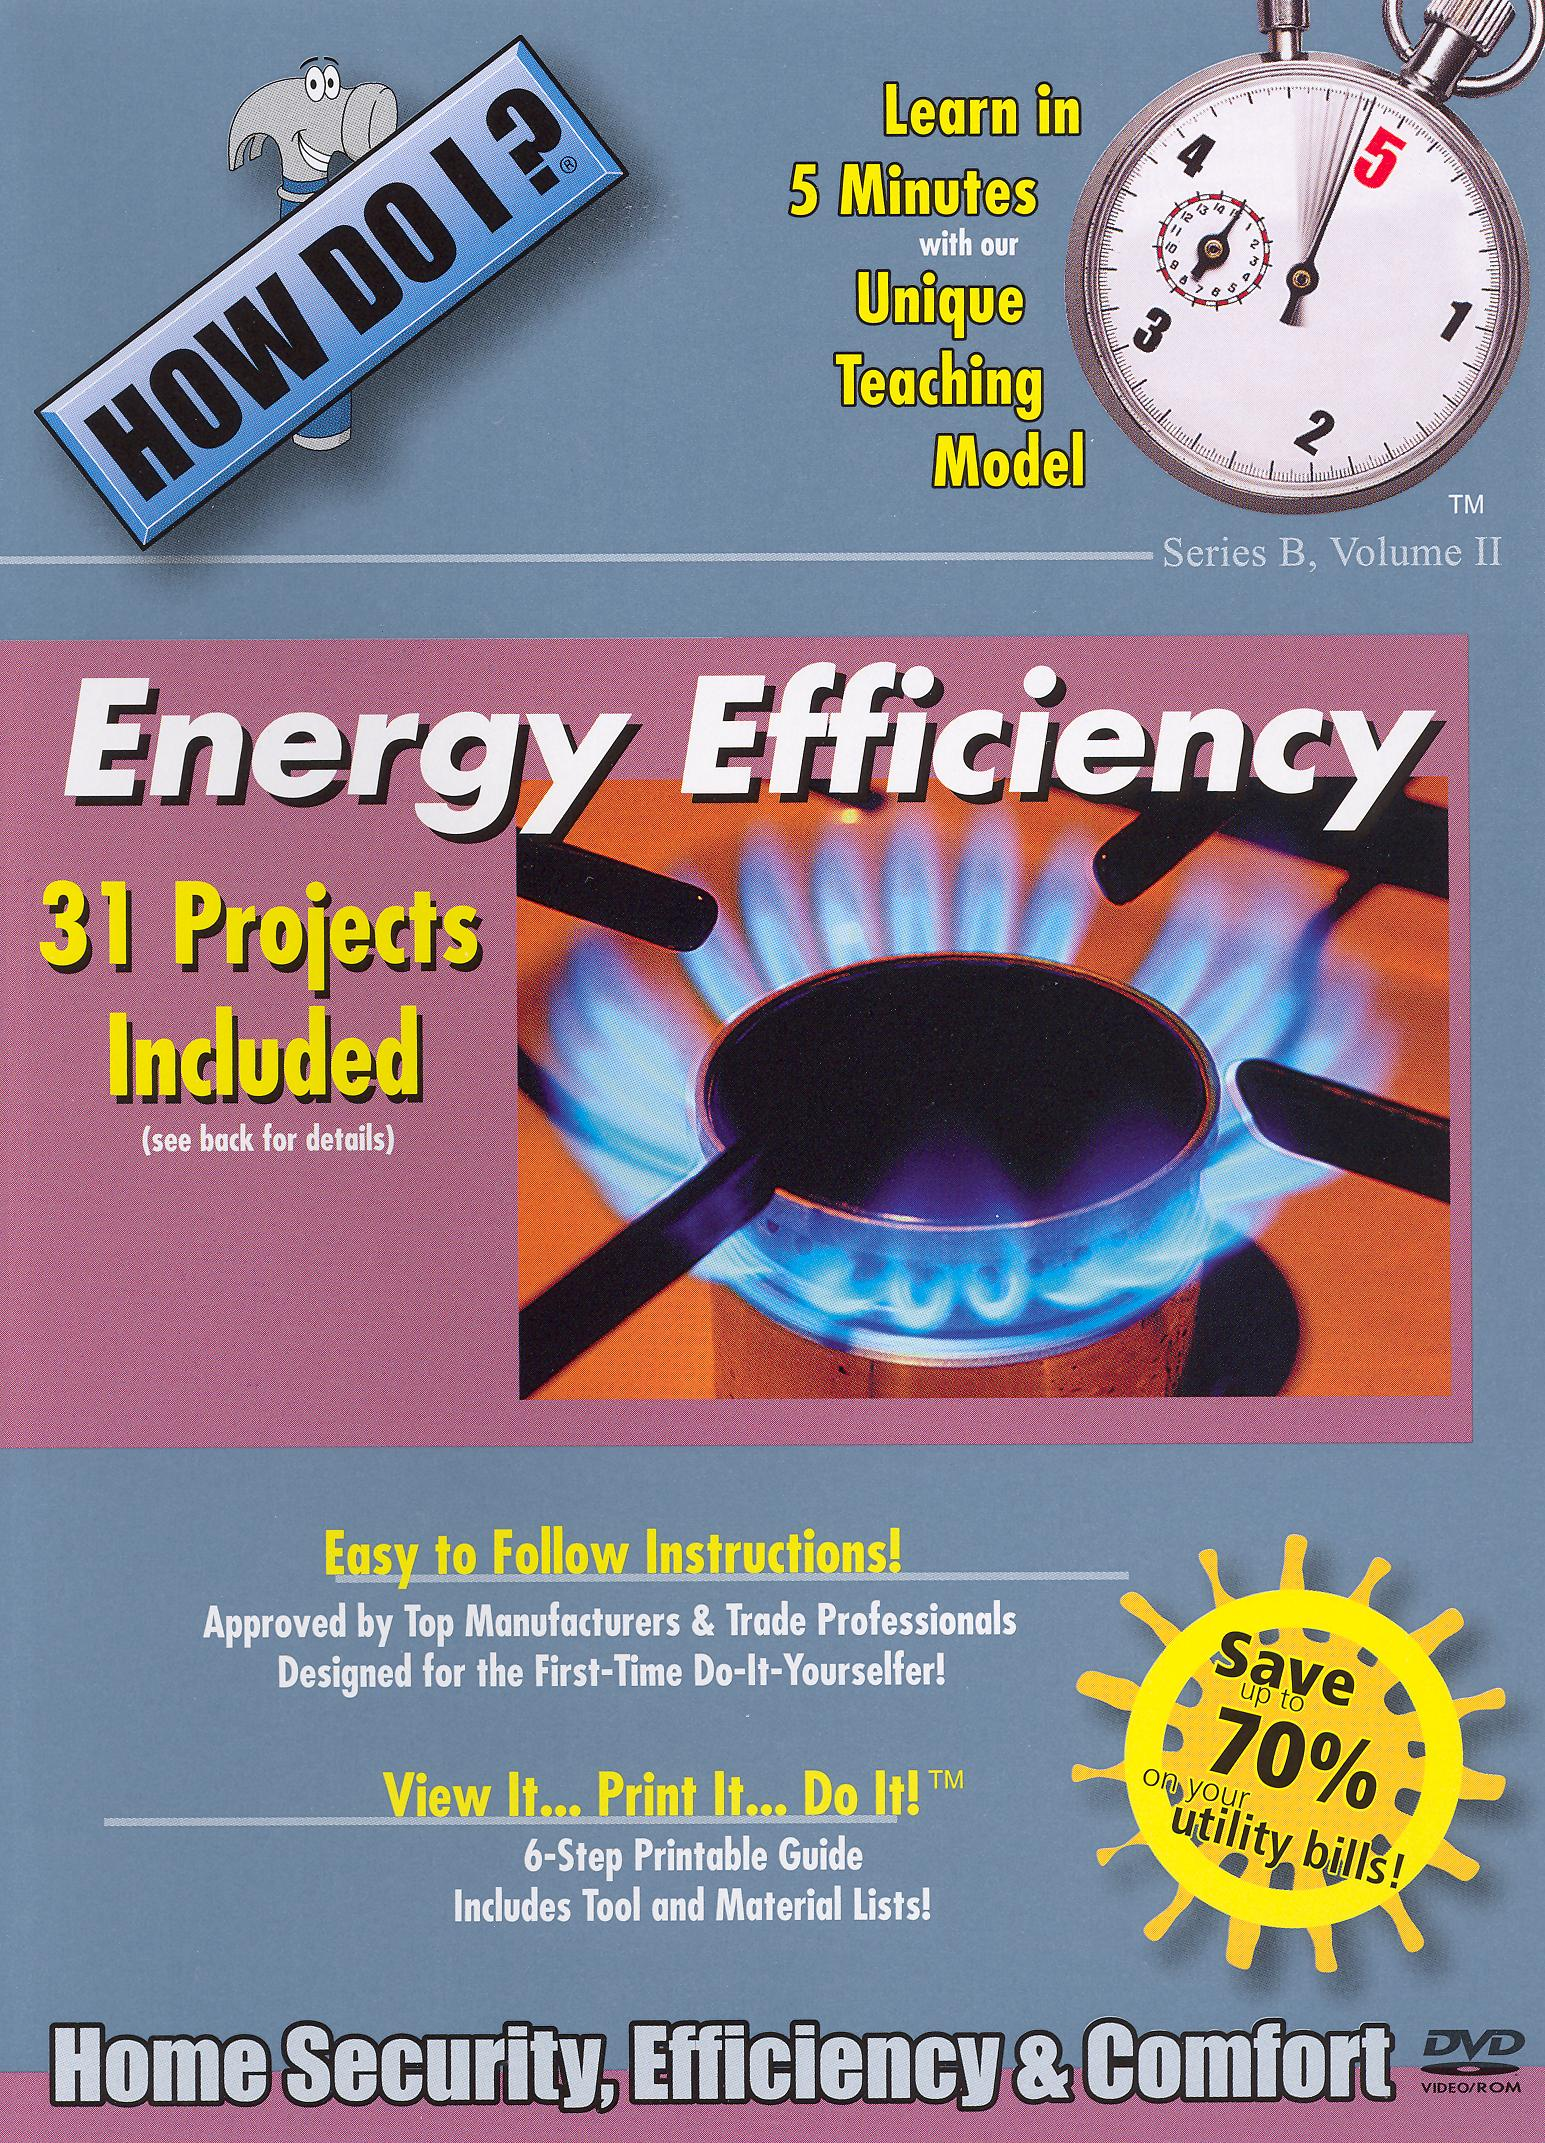 How Do I: Energy Efficiency